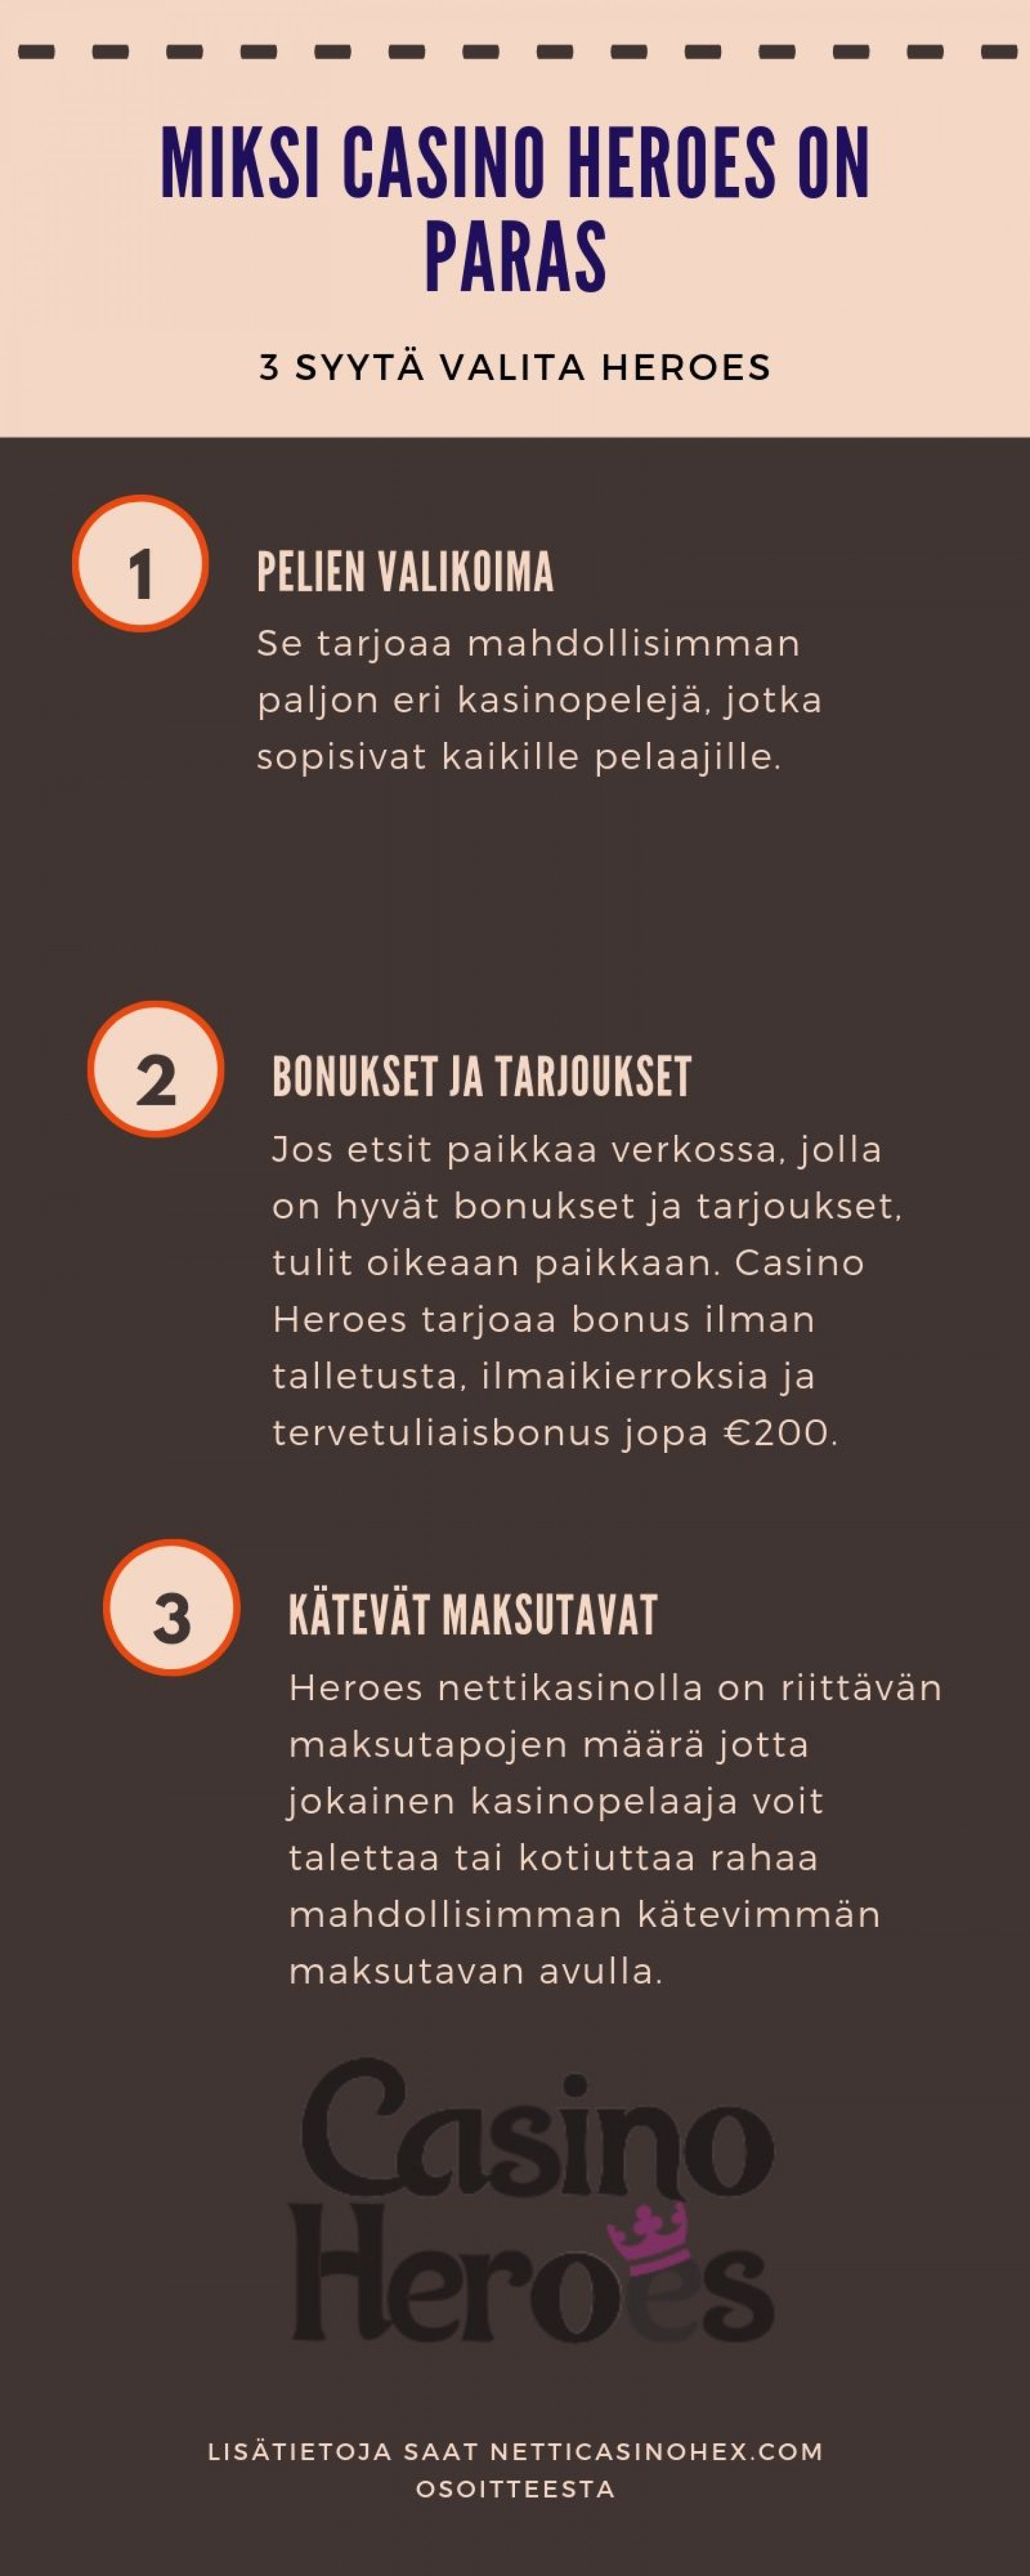 Miksi Casino Heroes on paras? Infographic